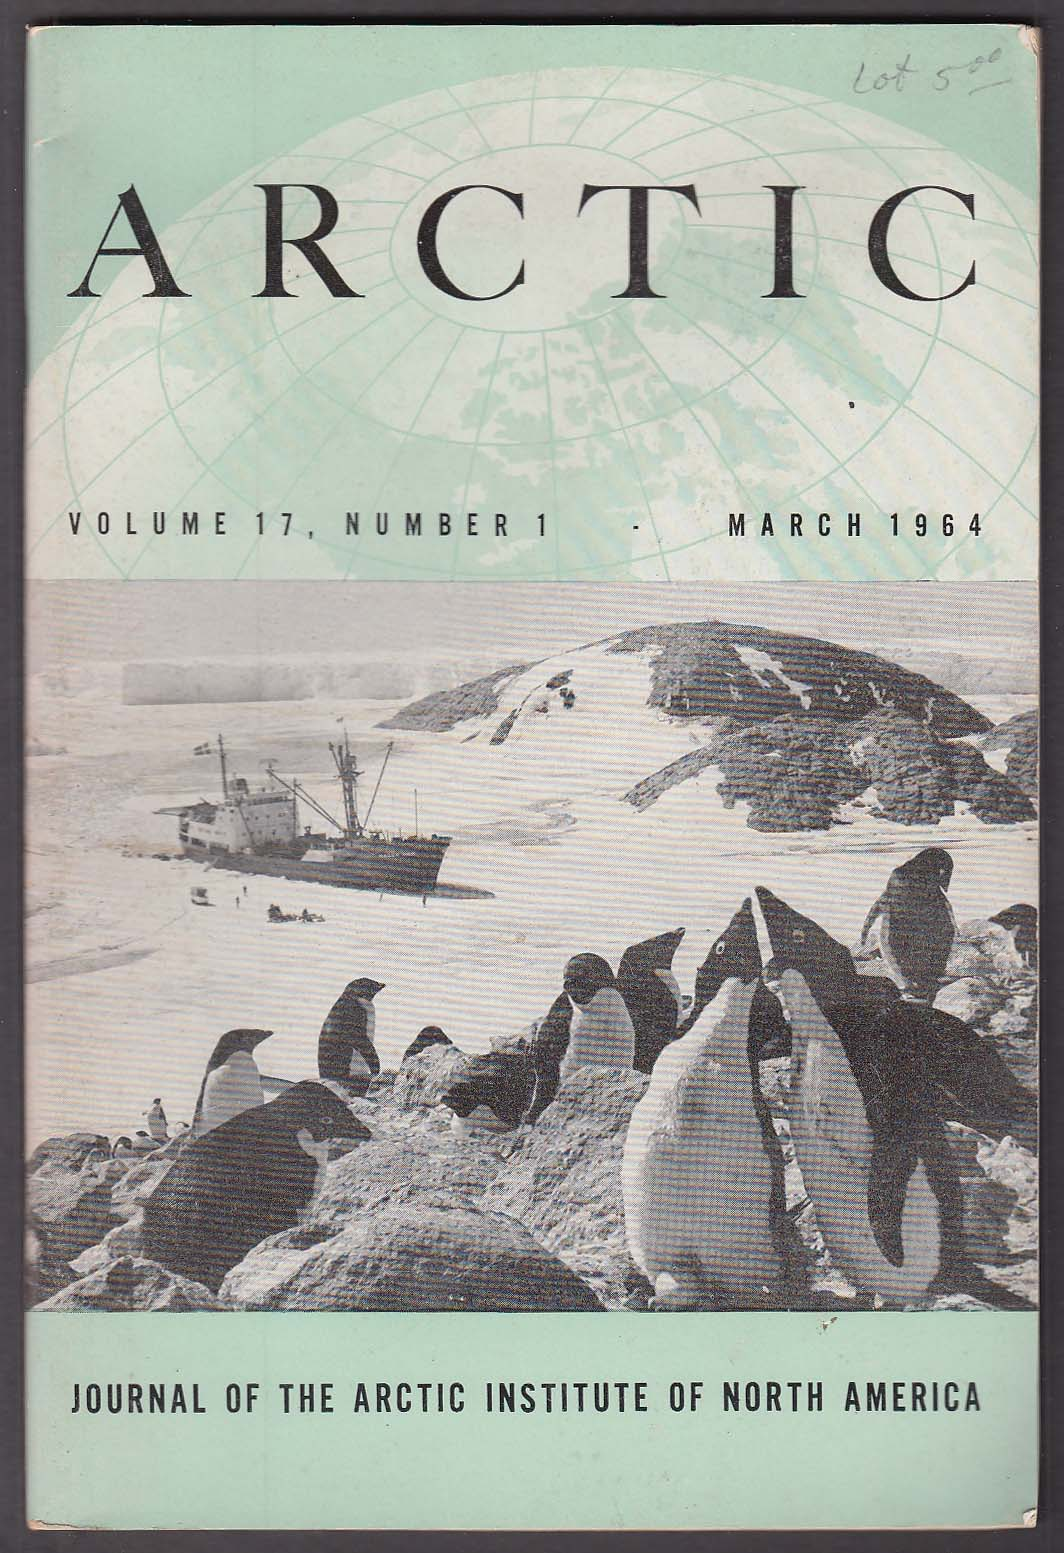 ARCTIC French Polar Effort Colville River Erosion Gastropod Egg Capsules 3 1964